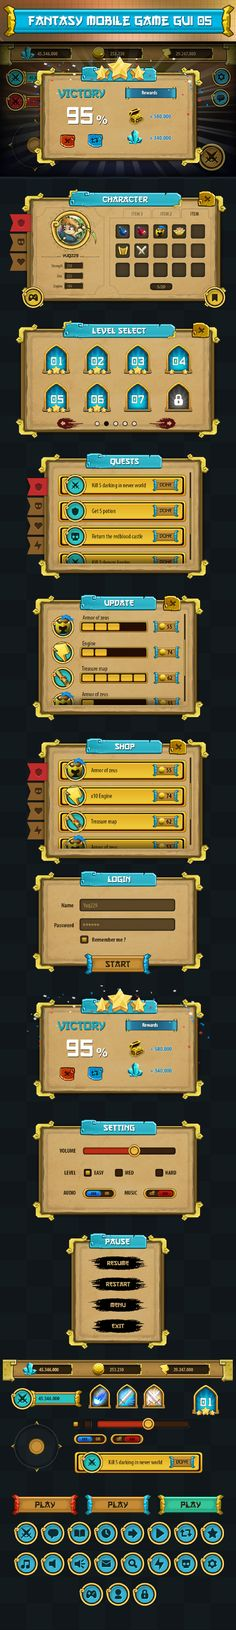 game gui pack 05 by Ryan Do, via Behance